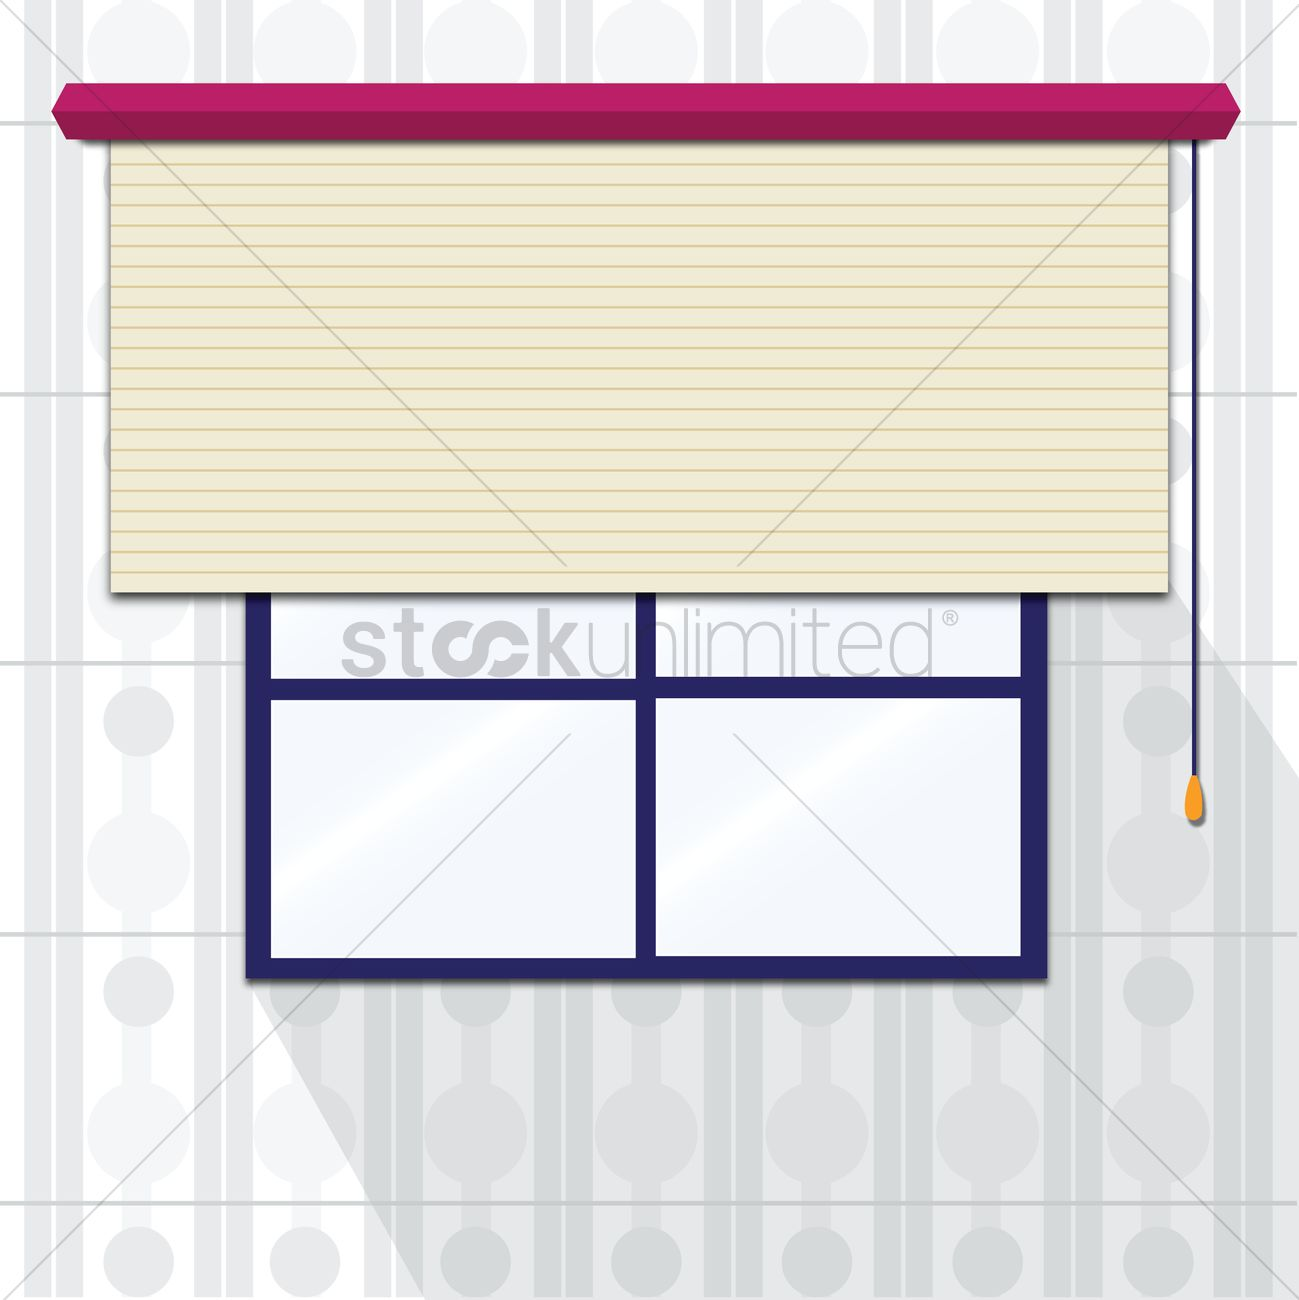 Window blinds clipart vector freeuse download Window with roller blinds Vector Image - 1237123 ... vector freeuse download